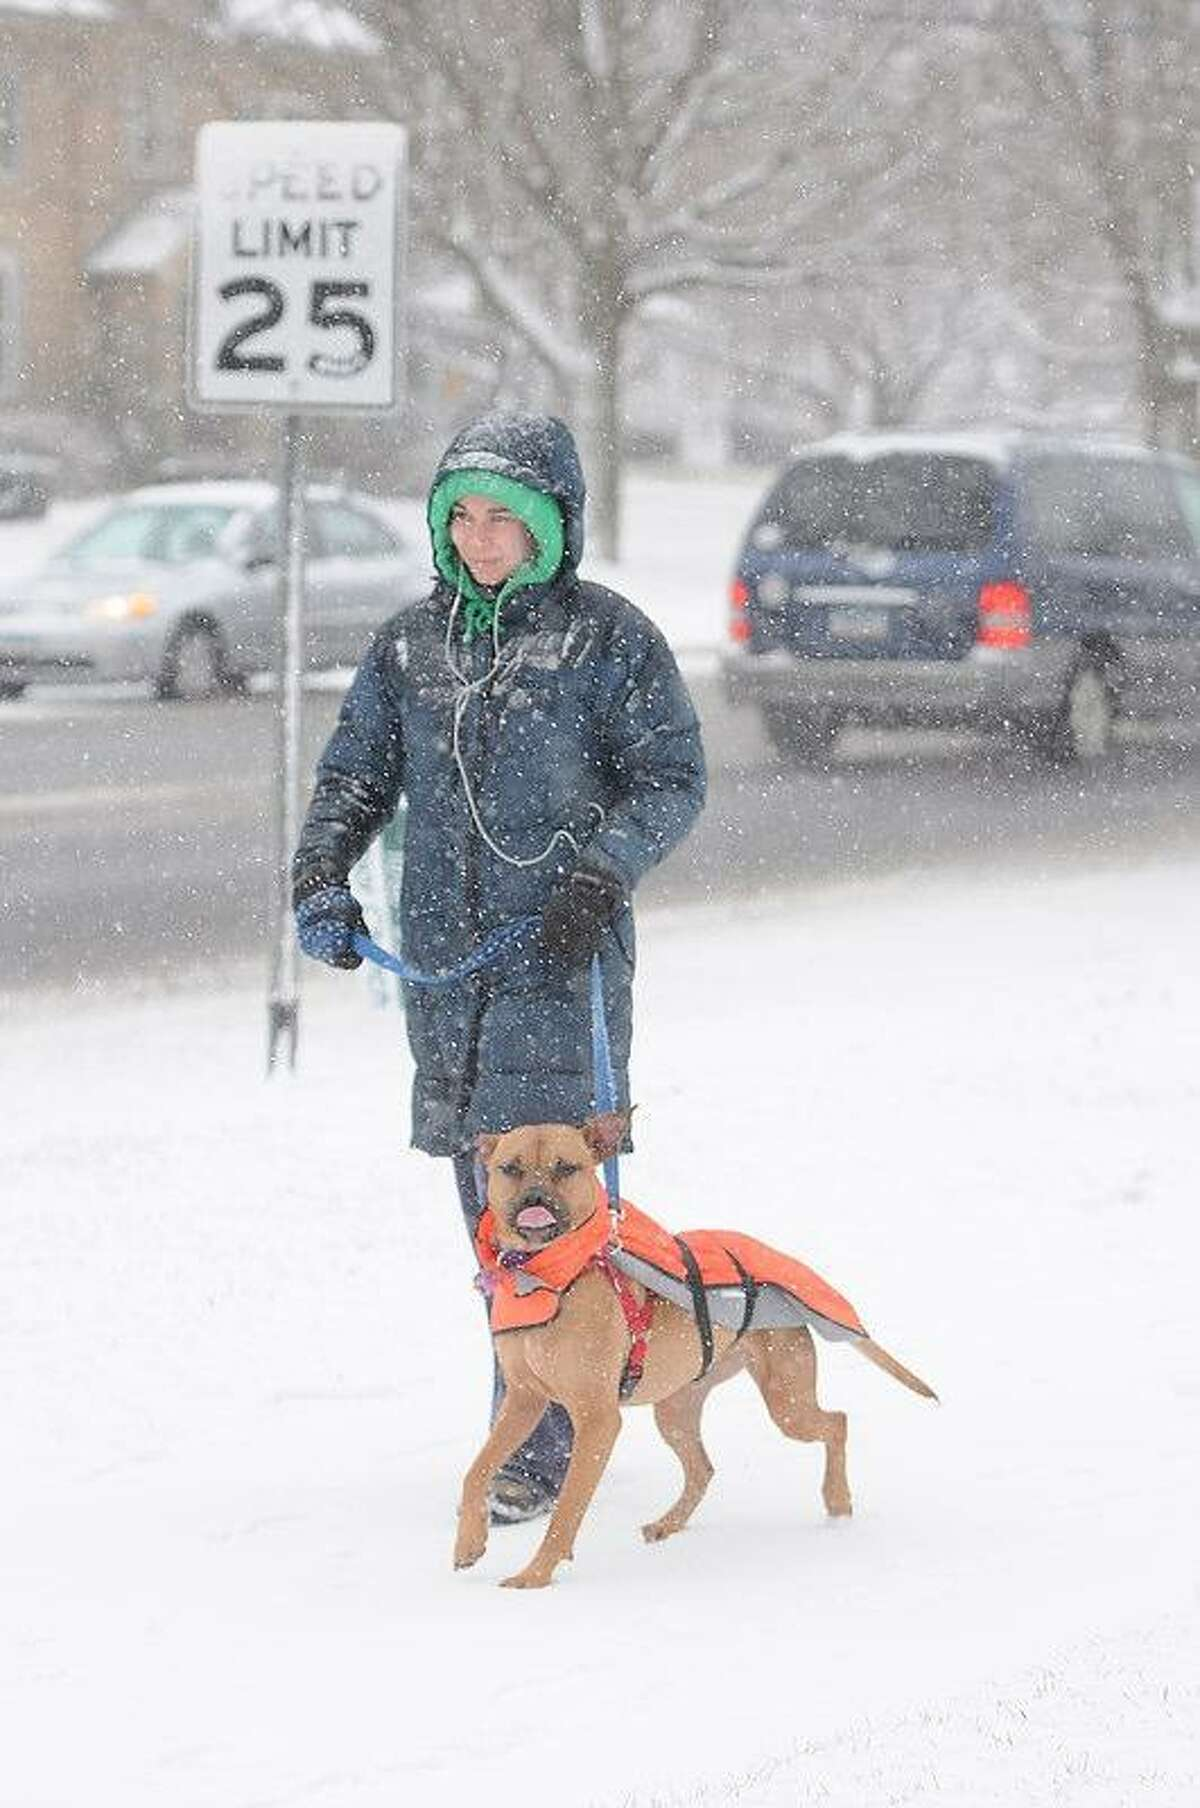 Lauren Lavoie of Branford walks her dog Tillie, boxer-pitbull mix, on Main Street in Branford, Connecticut, Friday morning February 8, 2013. Blizzard warnings have been issued for all of Connecticut, according to the National Weather Service. Connecticut residents should brace for a possible blizzard Friday and into Saturday that could dump up to two feet of snow, along with high winds and the potential for coastal flooding. Photo by Peter Hvizdak / New Haven Register